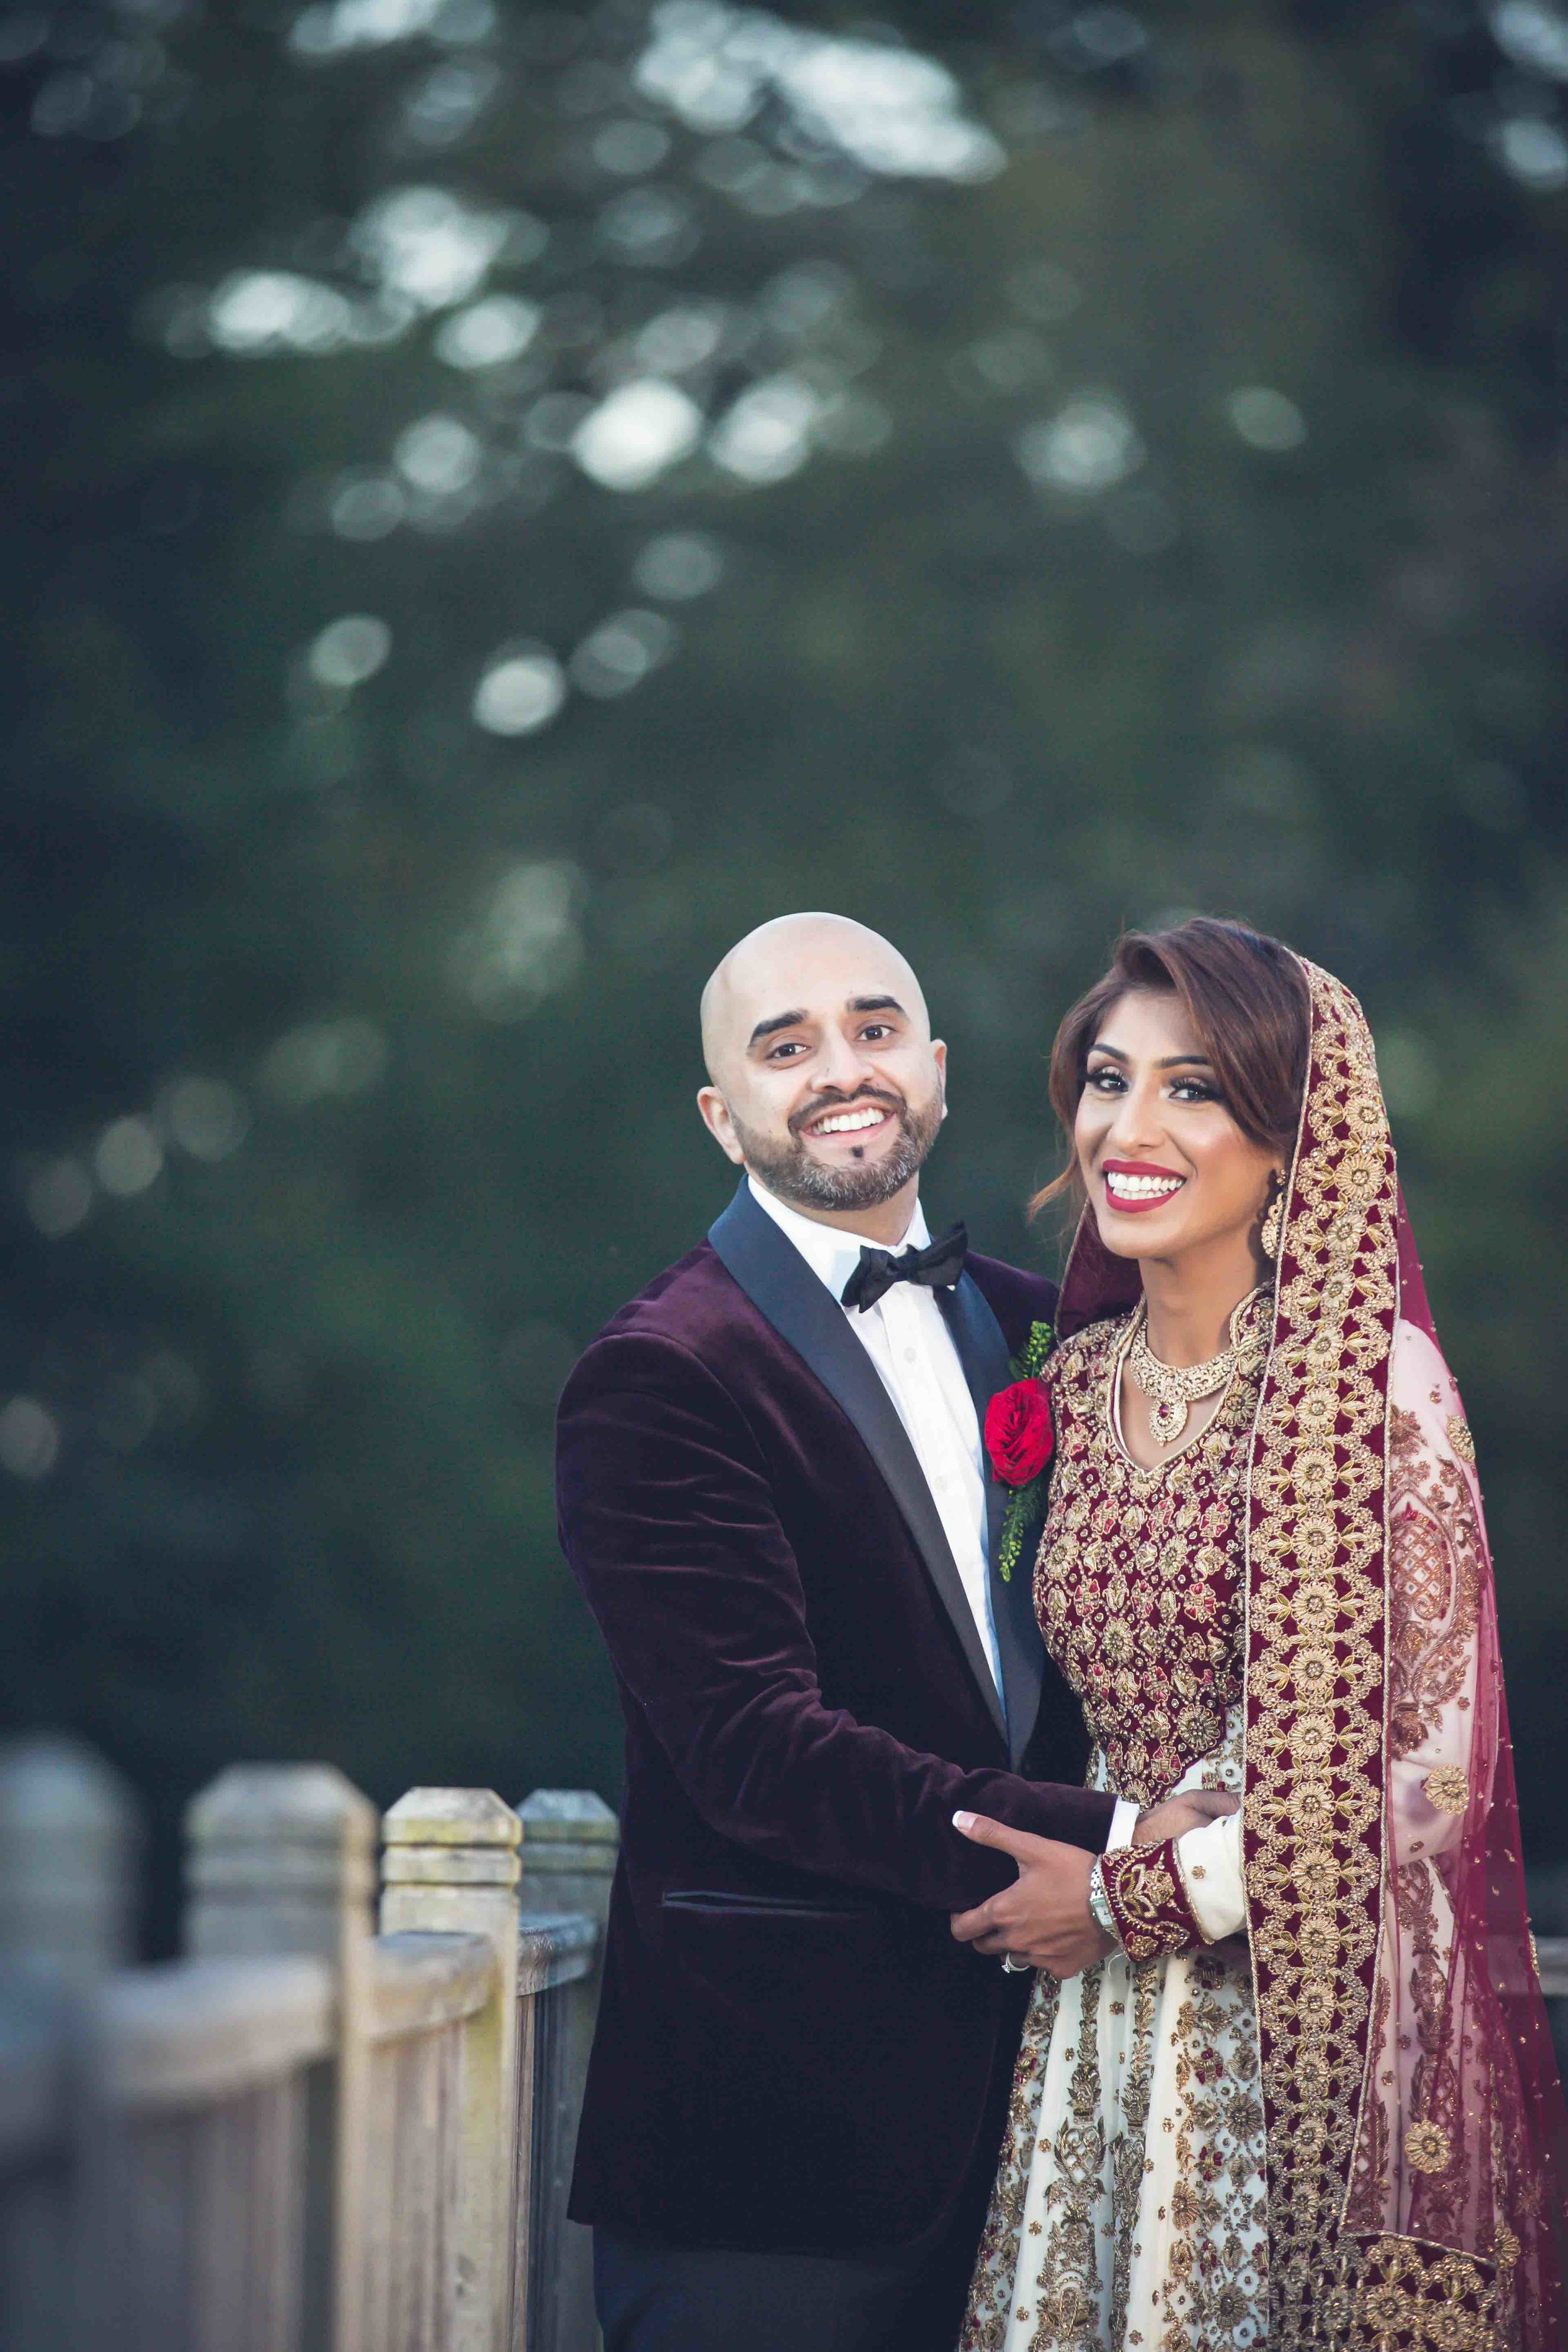 Asian Wedding Photographer Opu Sultan Photography Lyme Park Scotland Edinburgh Glasgow London Manchester Liverpool Birmingham Wedding Photos prewed shoot Azman & Saira Blog-122.jpg